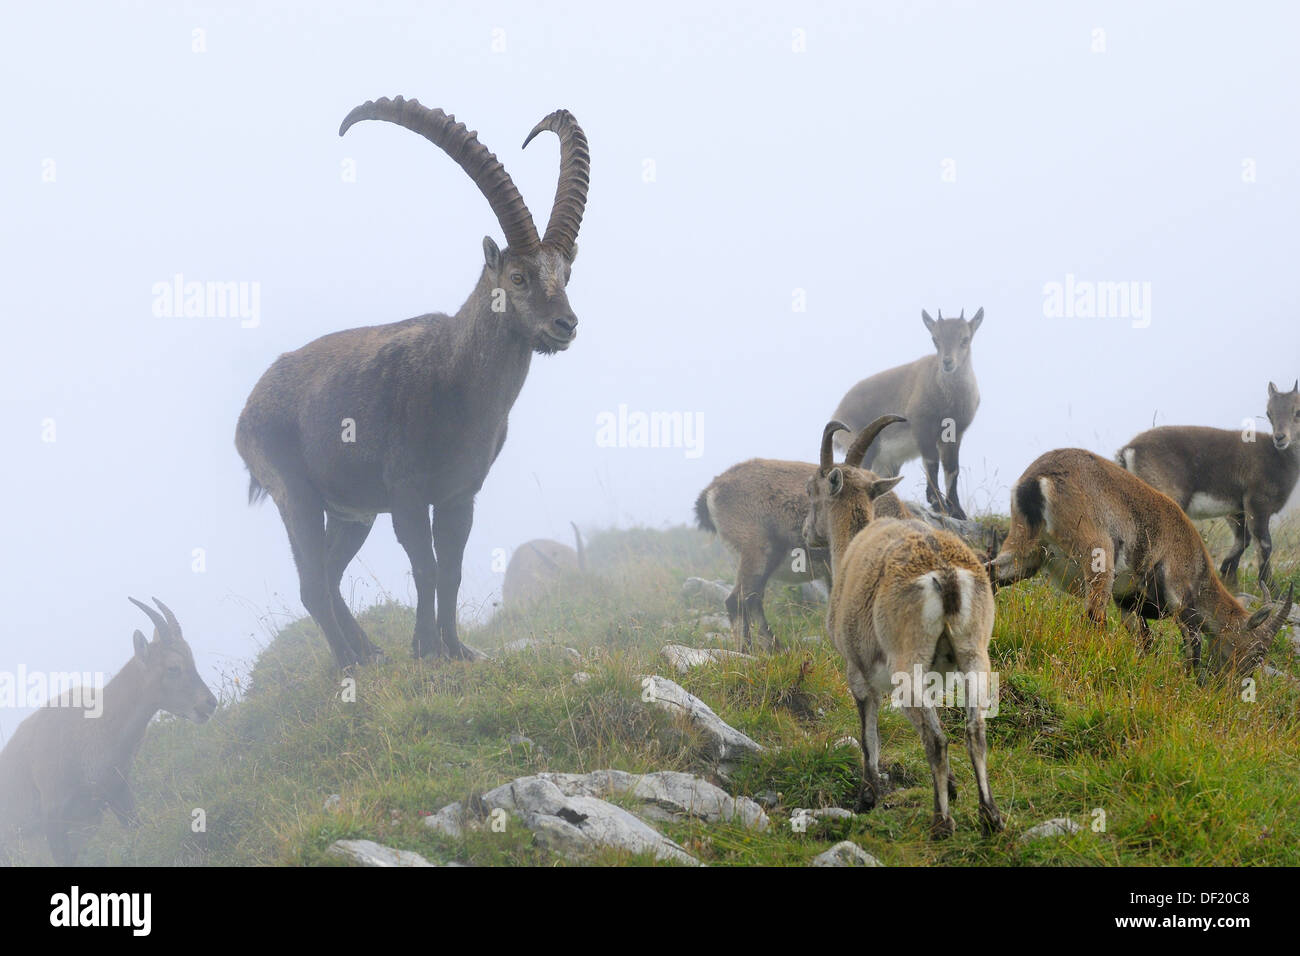 alpine ibex capra ibex herd in fog niederhorn switzerland stockfoto lizenzfreies bild. Black Bedroom Furniture Sets. Home Design Ideas